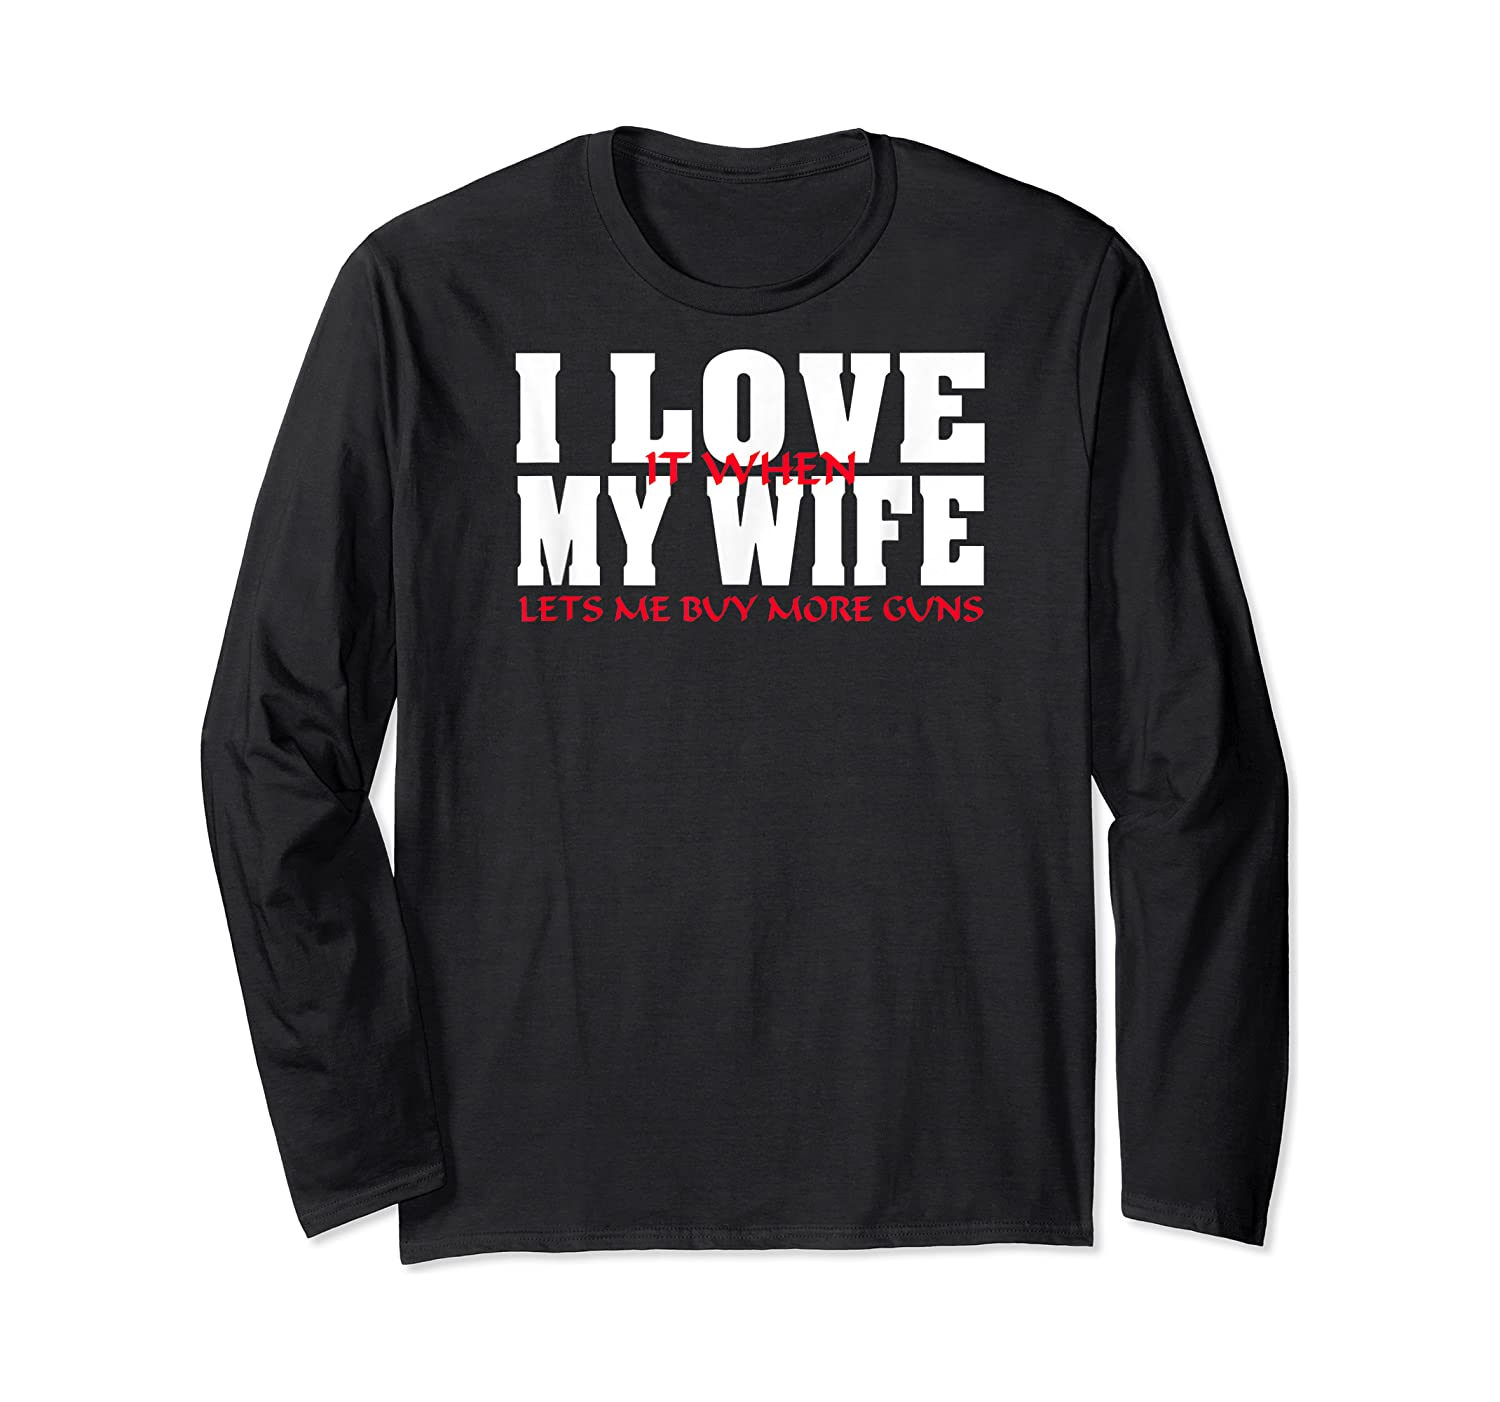 I Love It When My Wife Lets Me Buy More Guns Funny Husband T-shirt Long Sleeve T-shirt